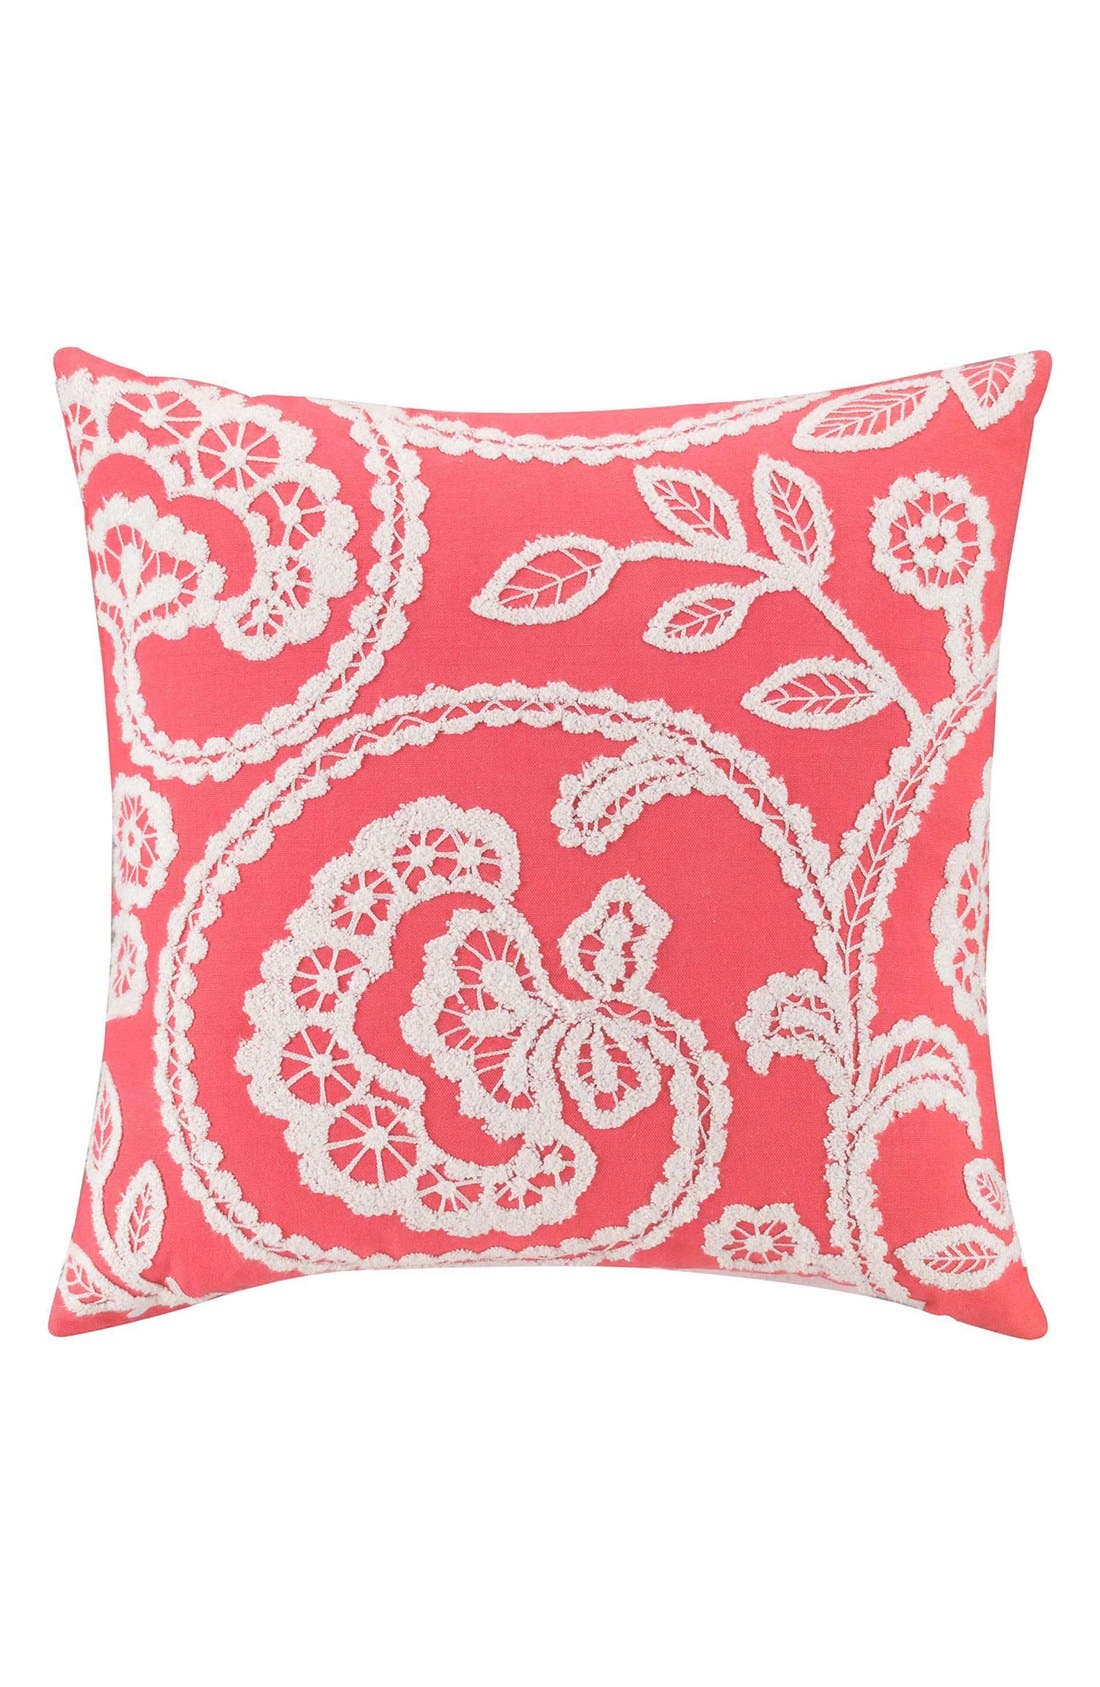 KAS Designs 'Ingrid' Pillow